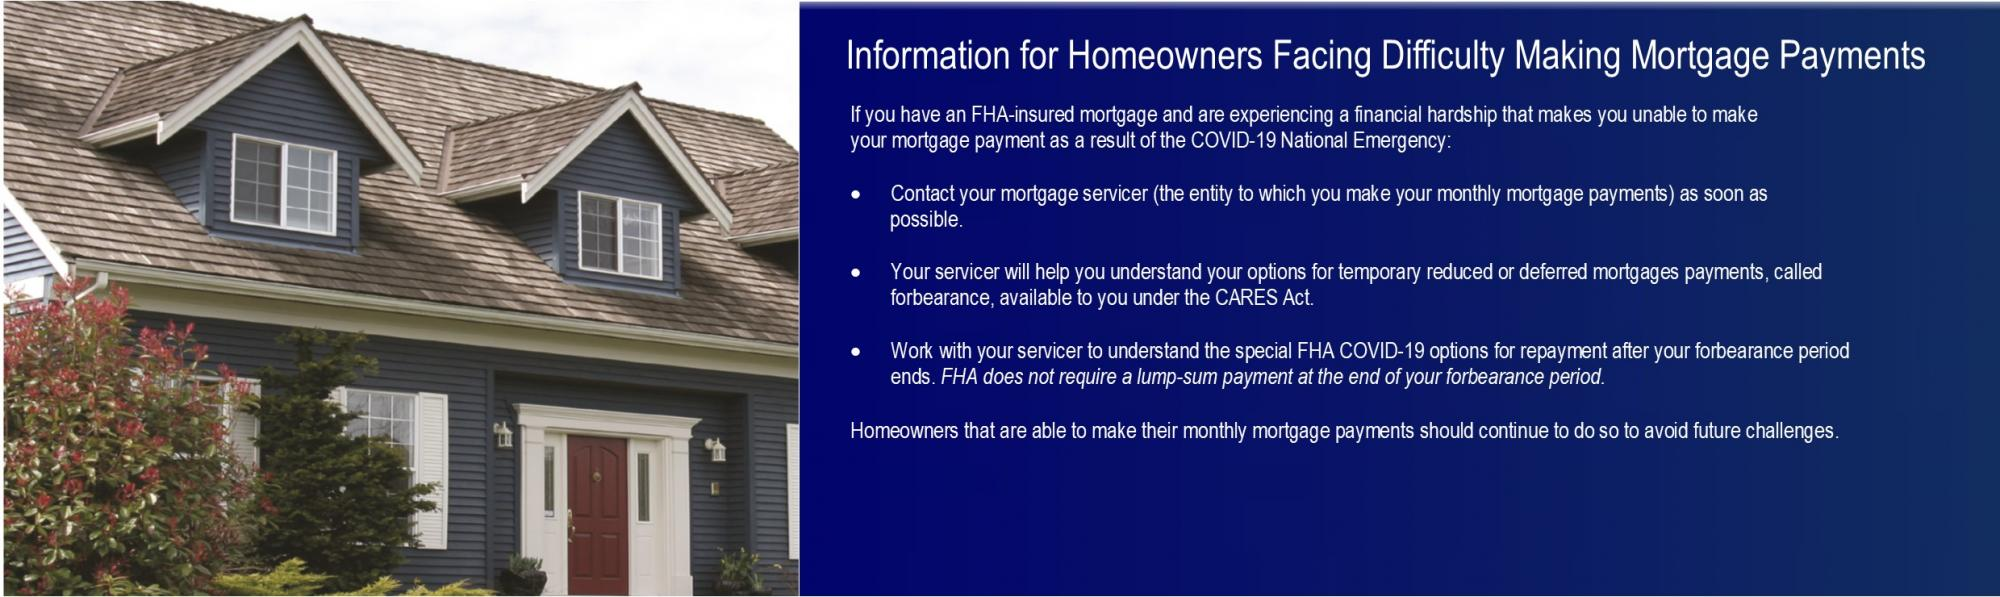 [Information for Homeowners Facing Difficulty Making Mortgage Payments]. HUD Photo